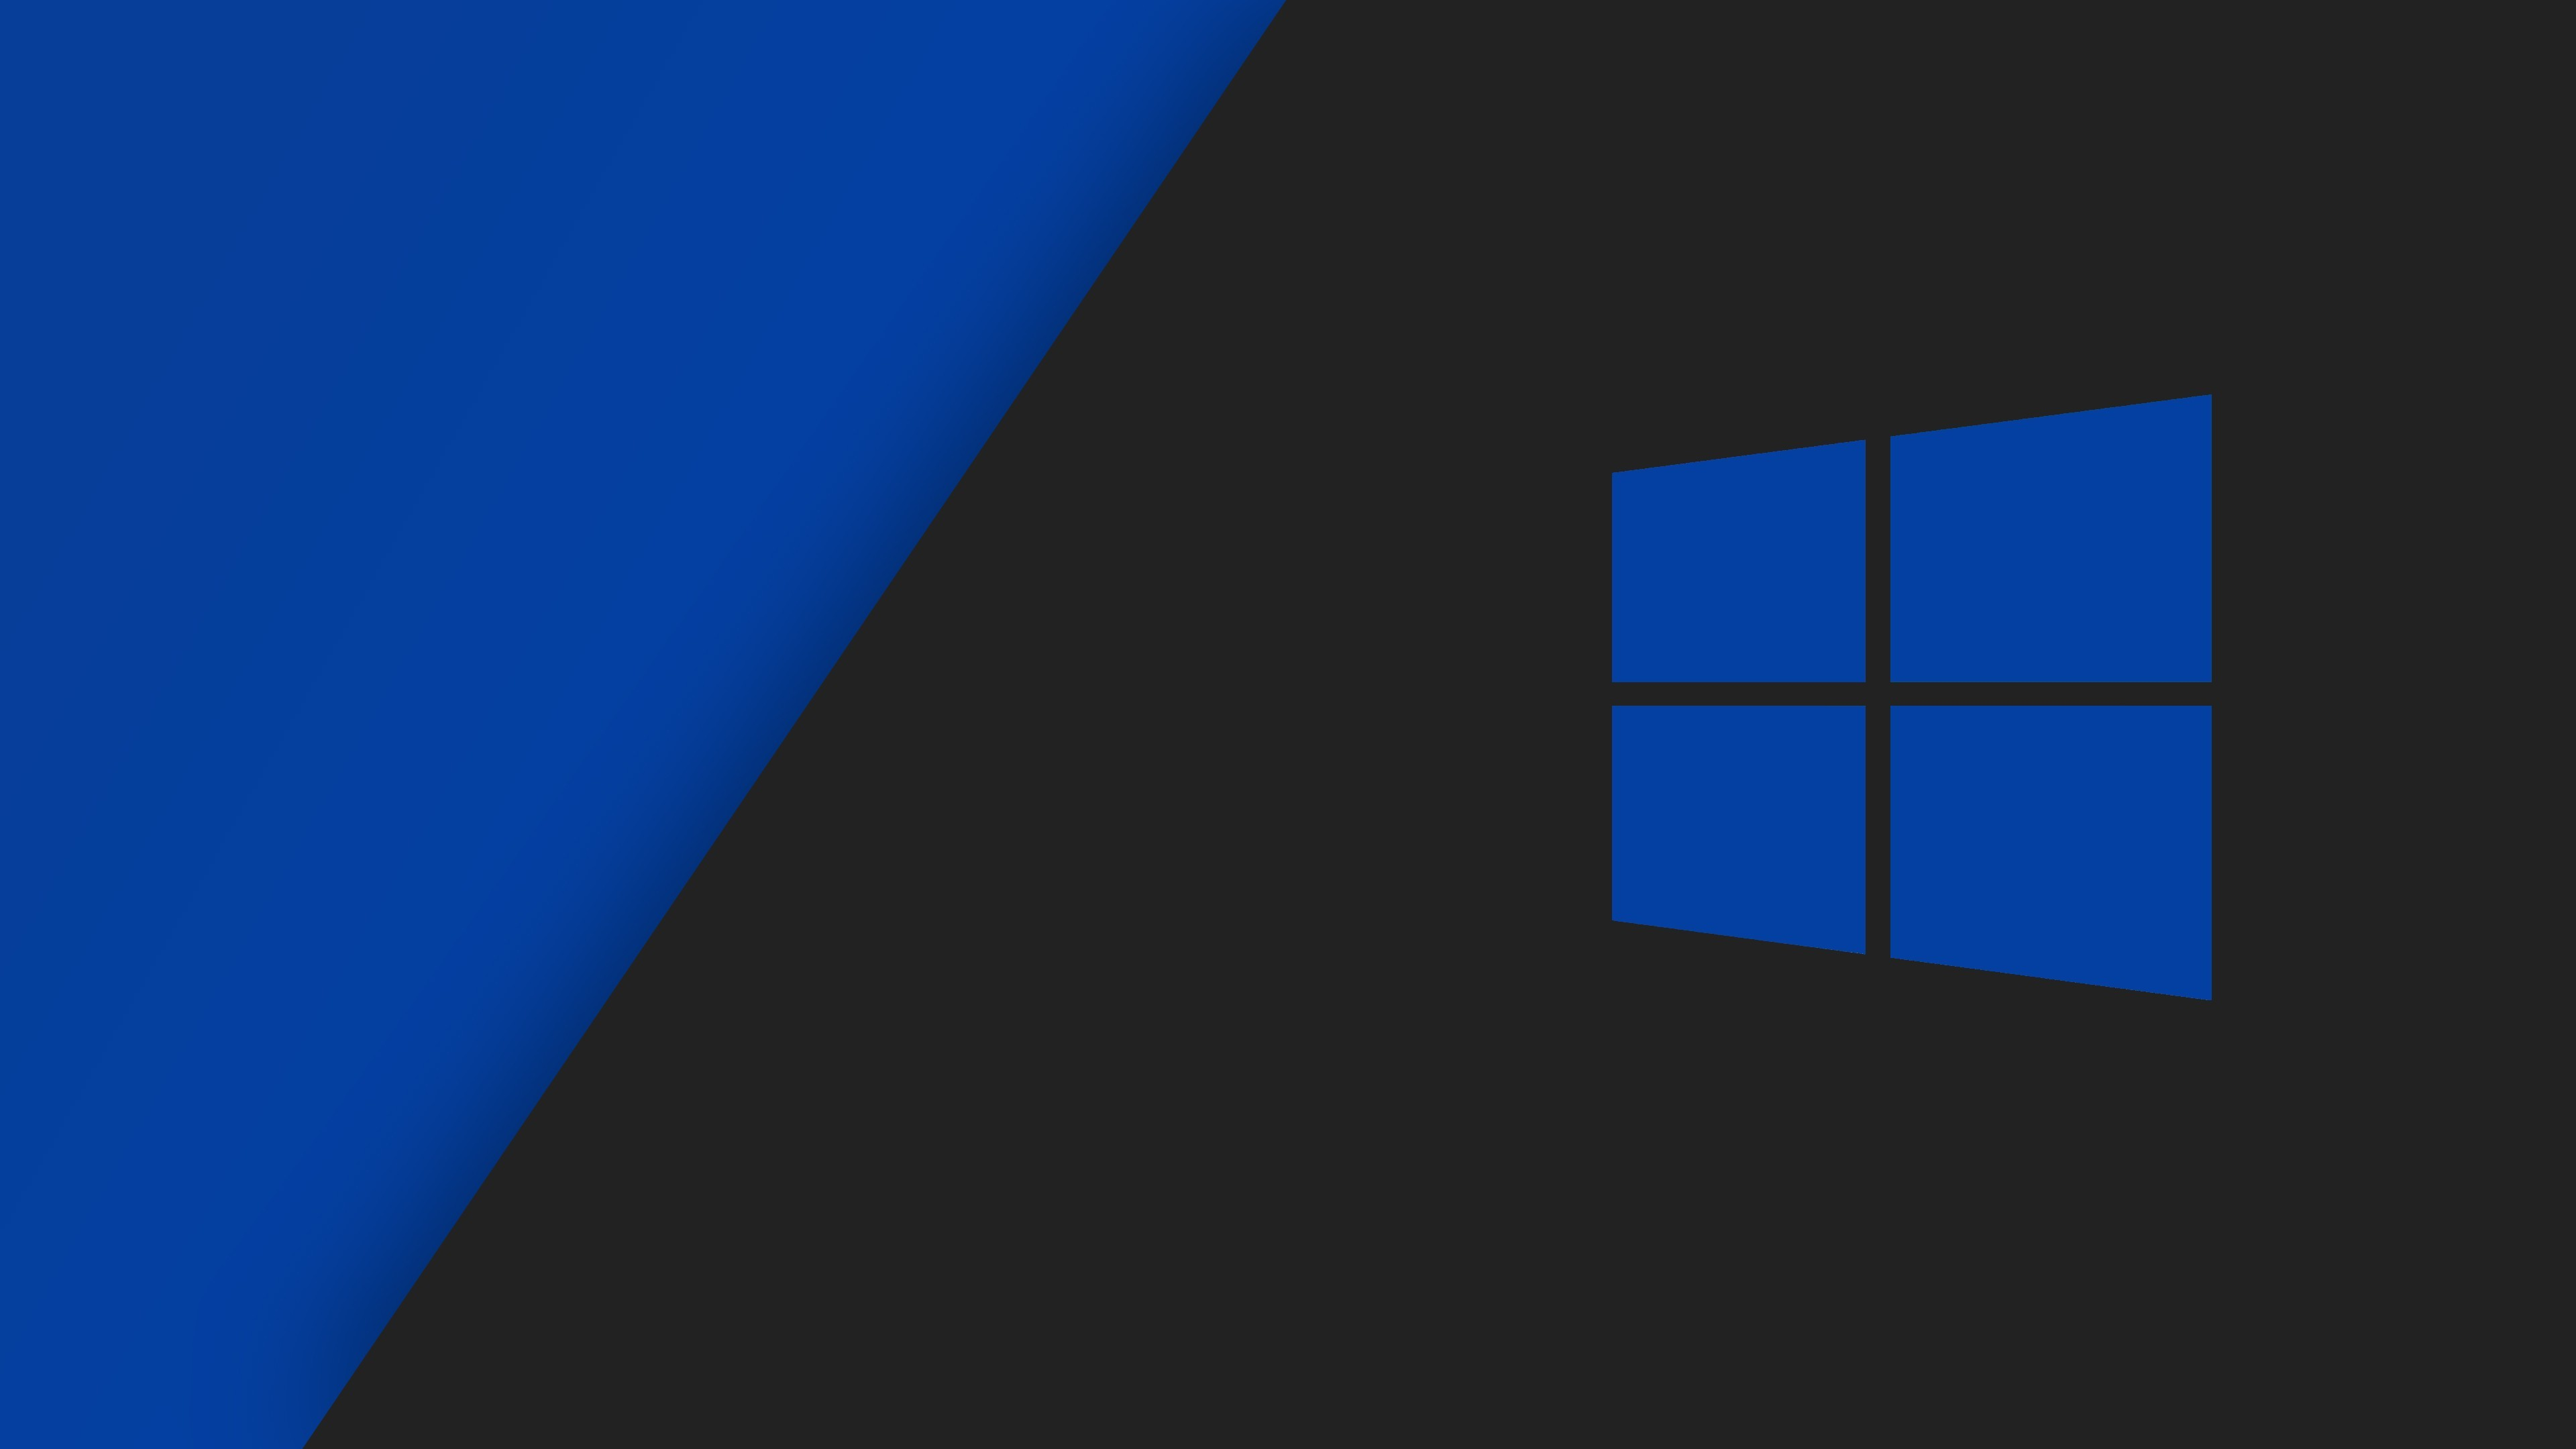 Windows 10 Wallpapers Official Posted By Michelle Simpson